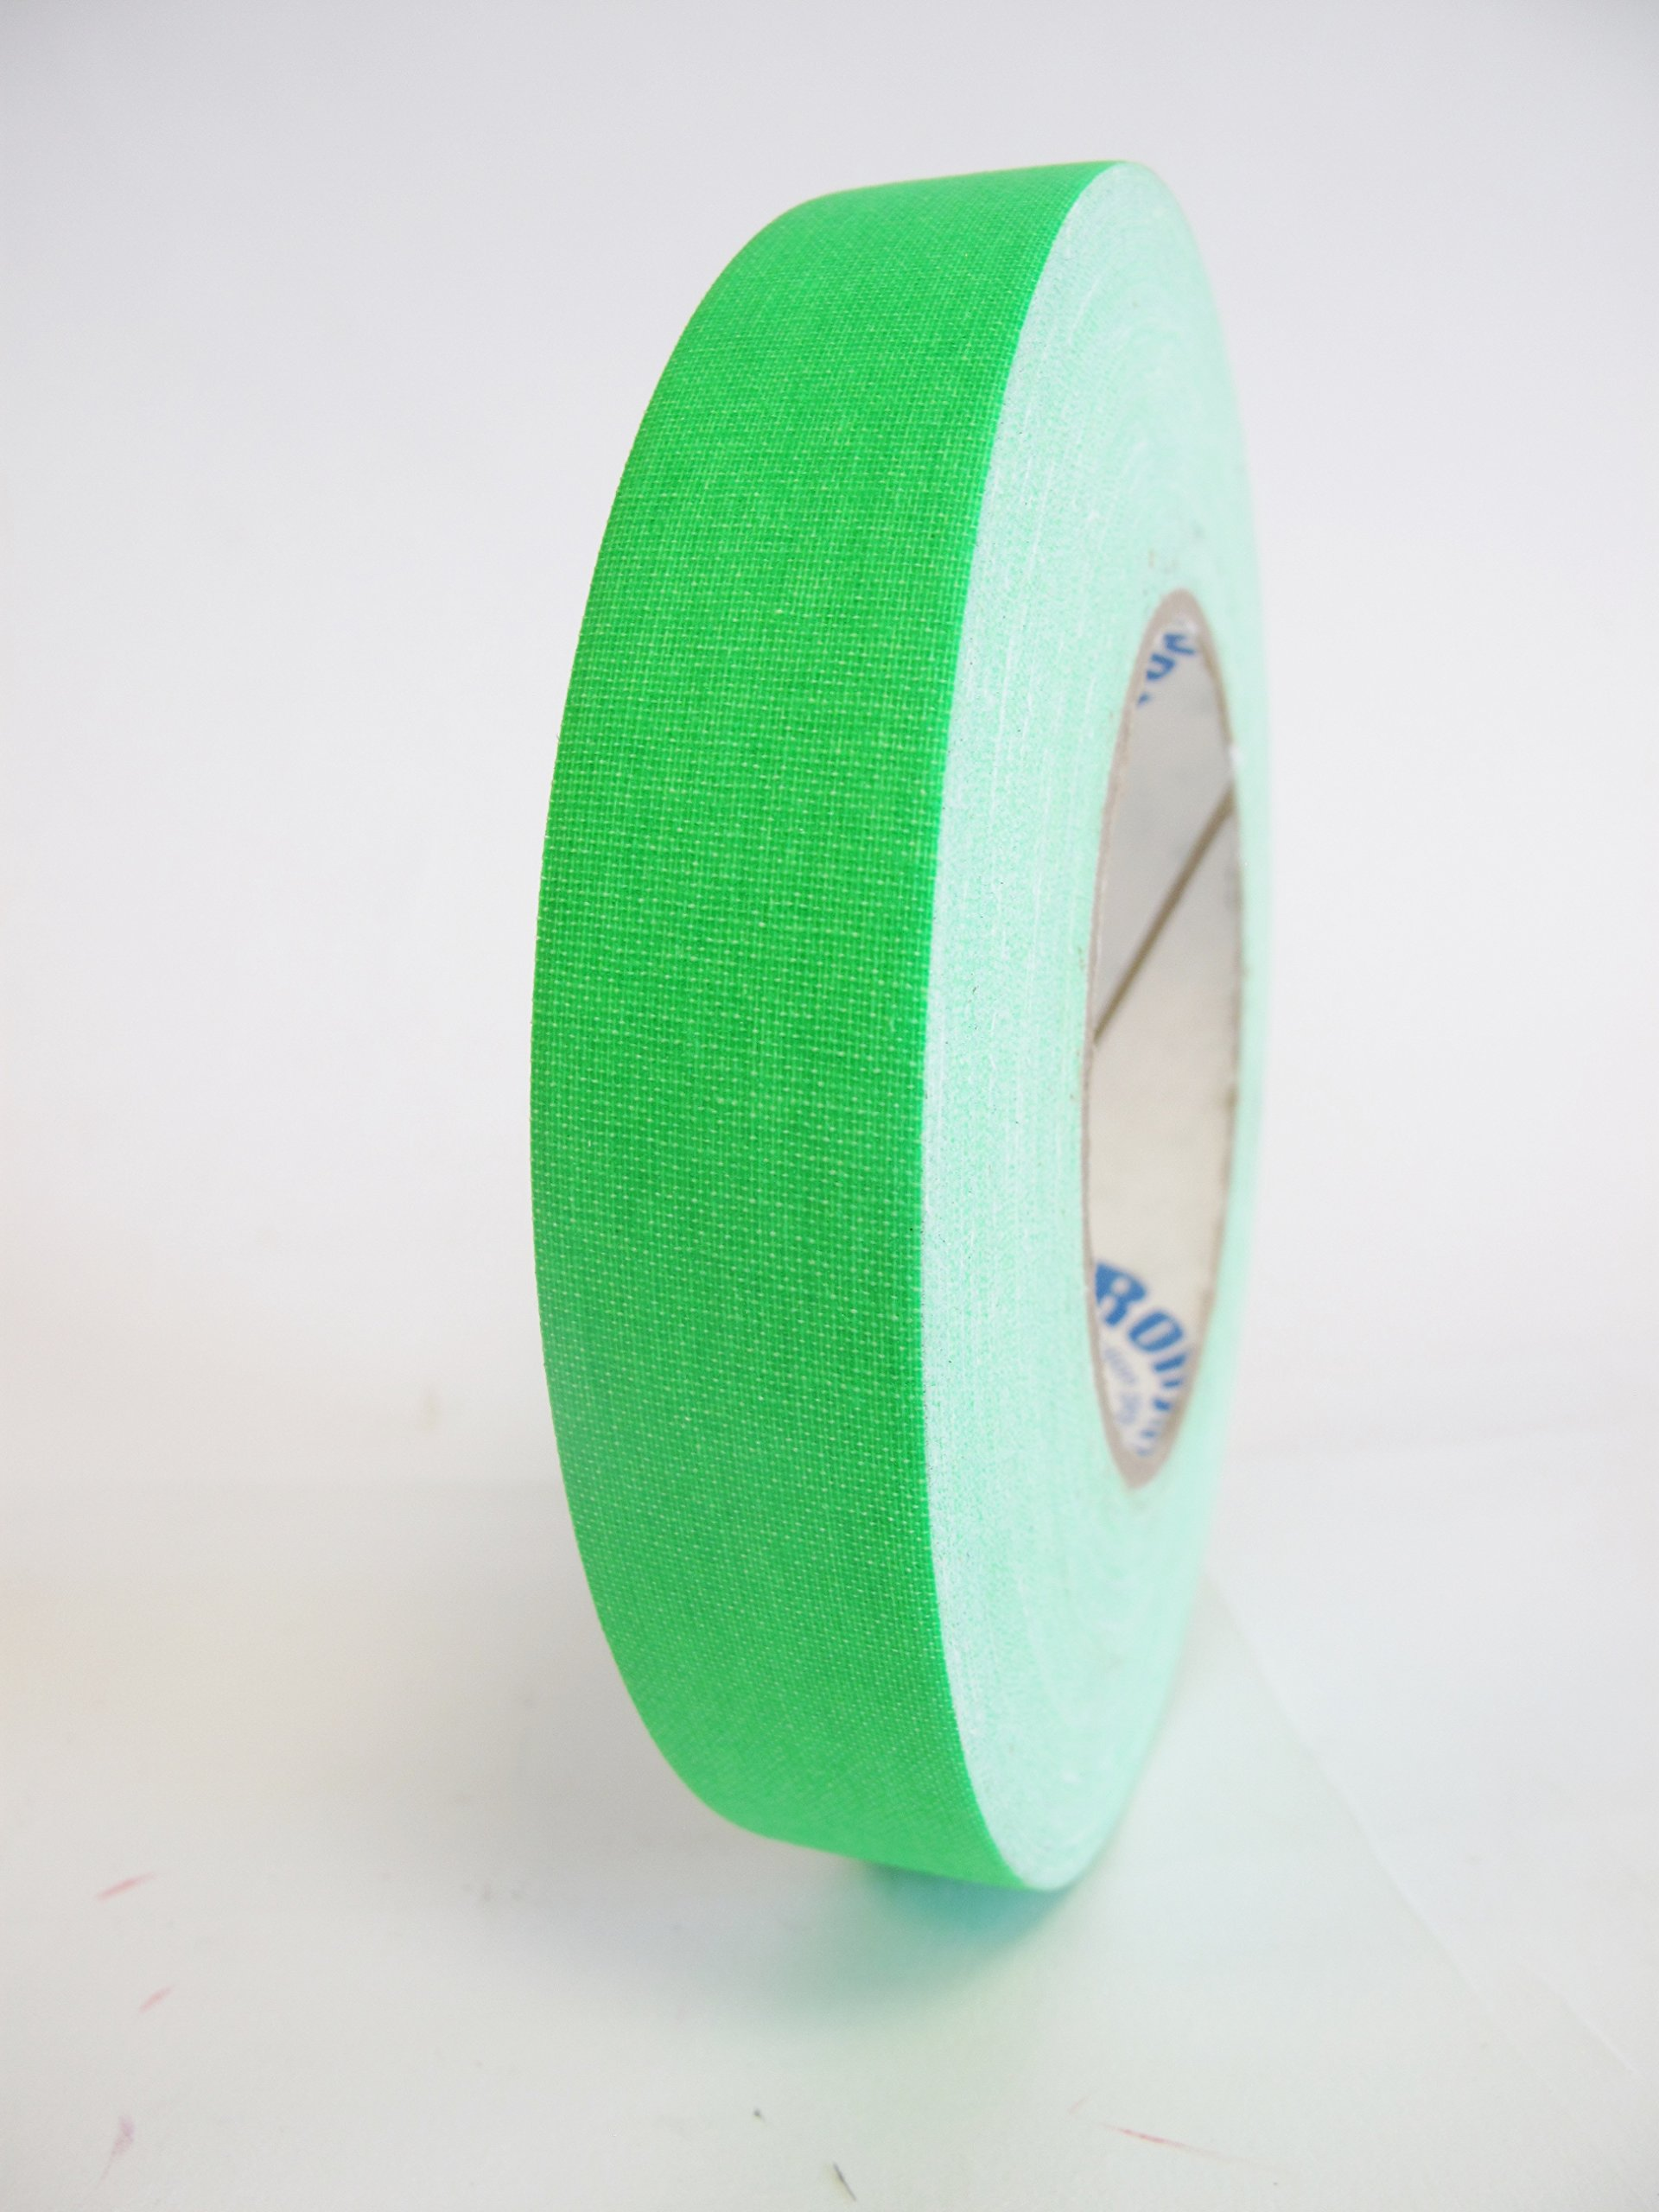 24 Rolls Premium Professional Gaffer Tape - 1 Inch X 50 Yards - Fluorescent / Neon Green Color - 24 Rolls per Case